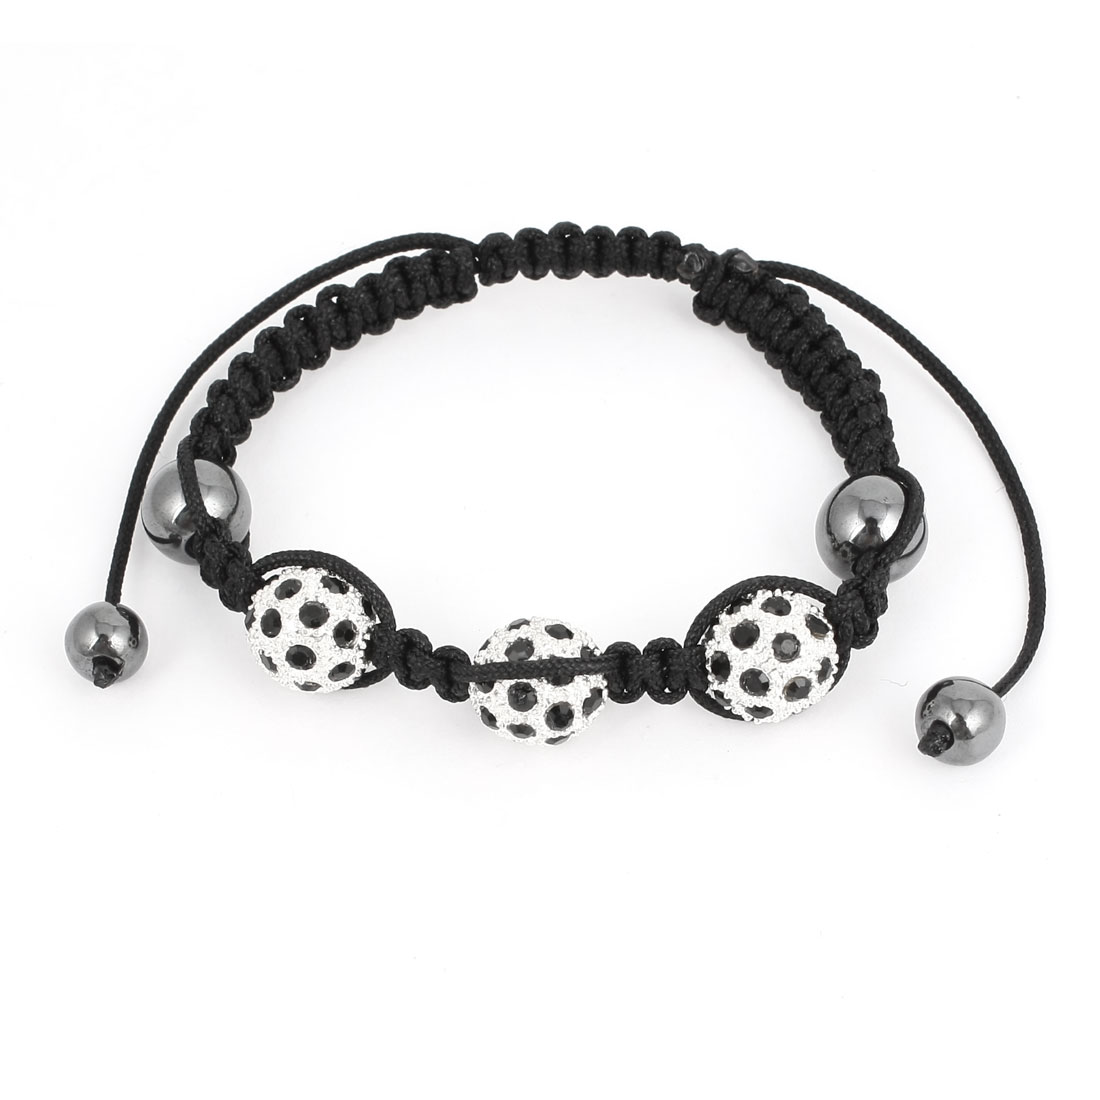 Unisex Rhinestone Metal Beads Detailing Adjustable Hand-knitting Bracelet Bangle